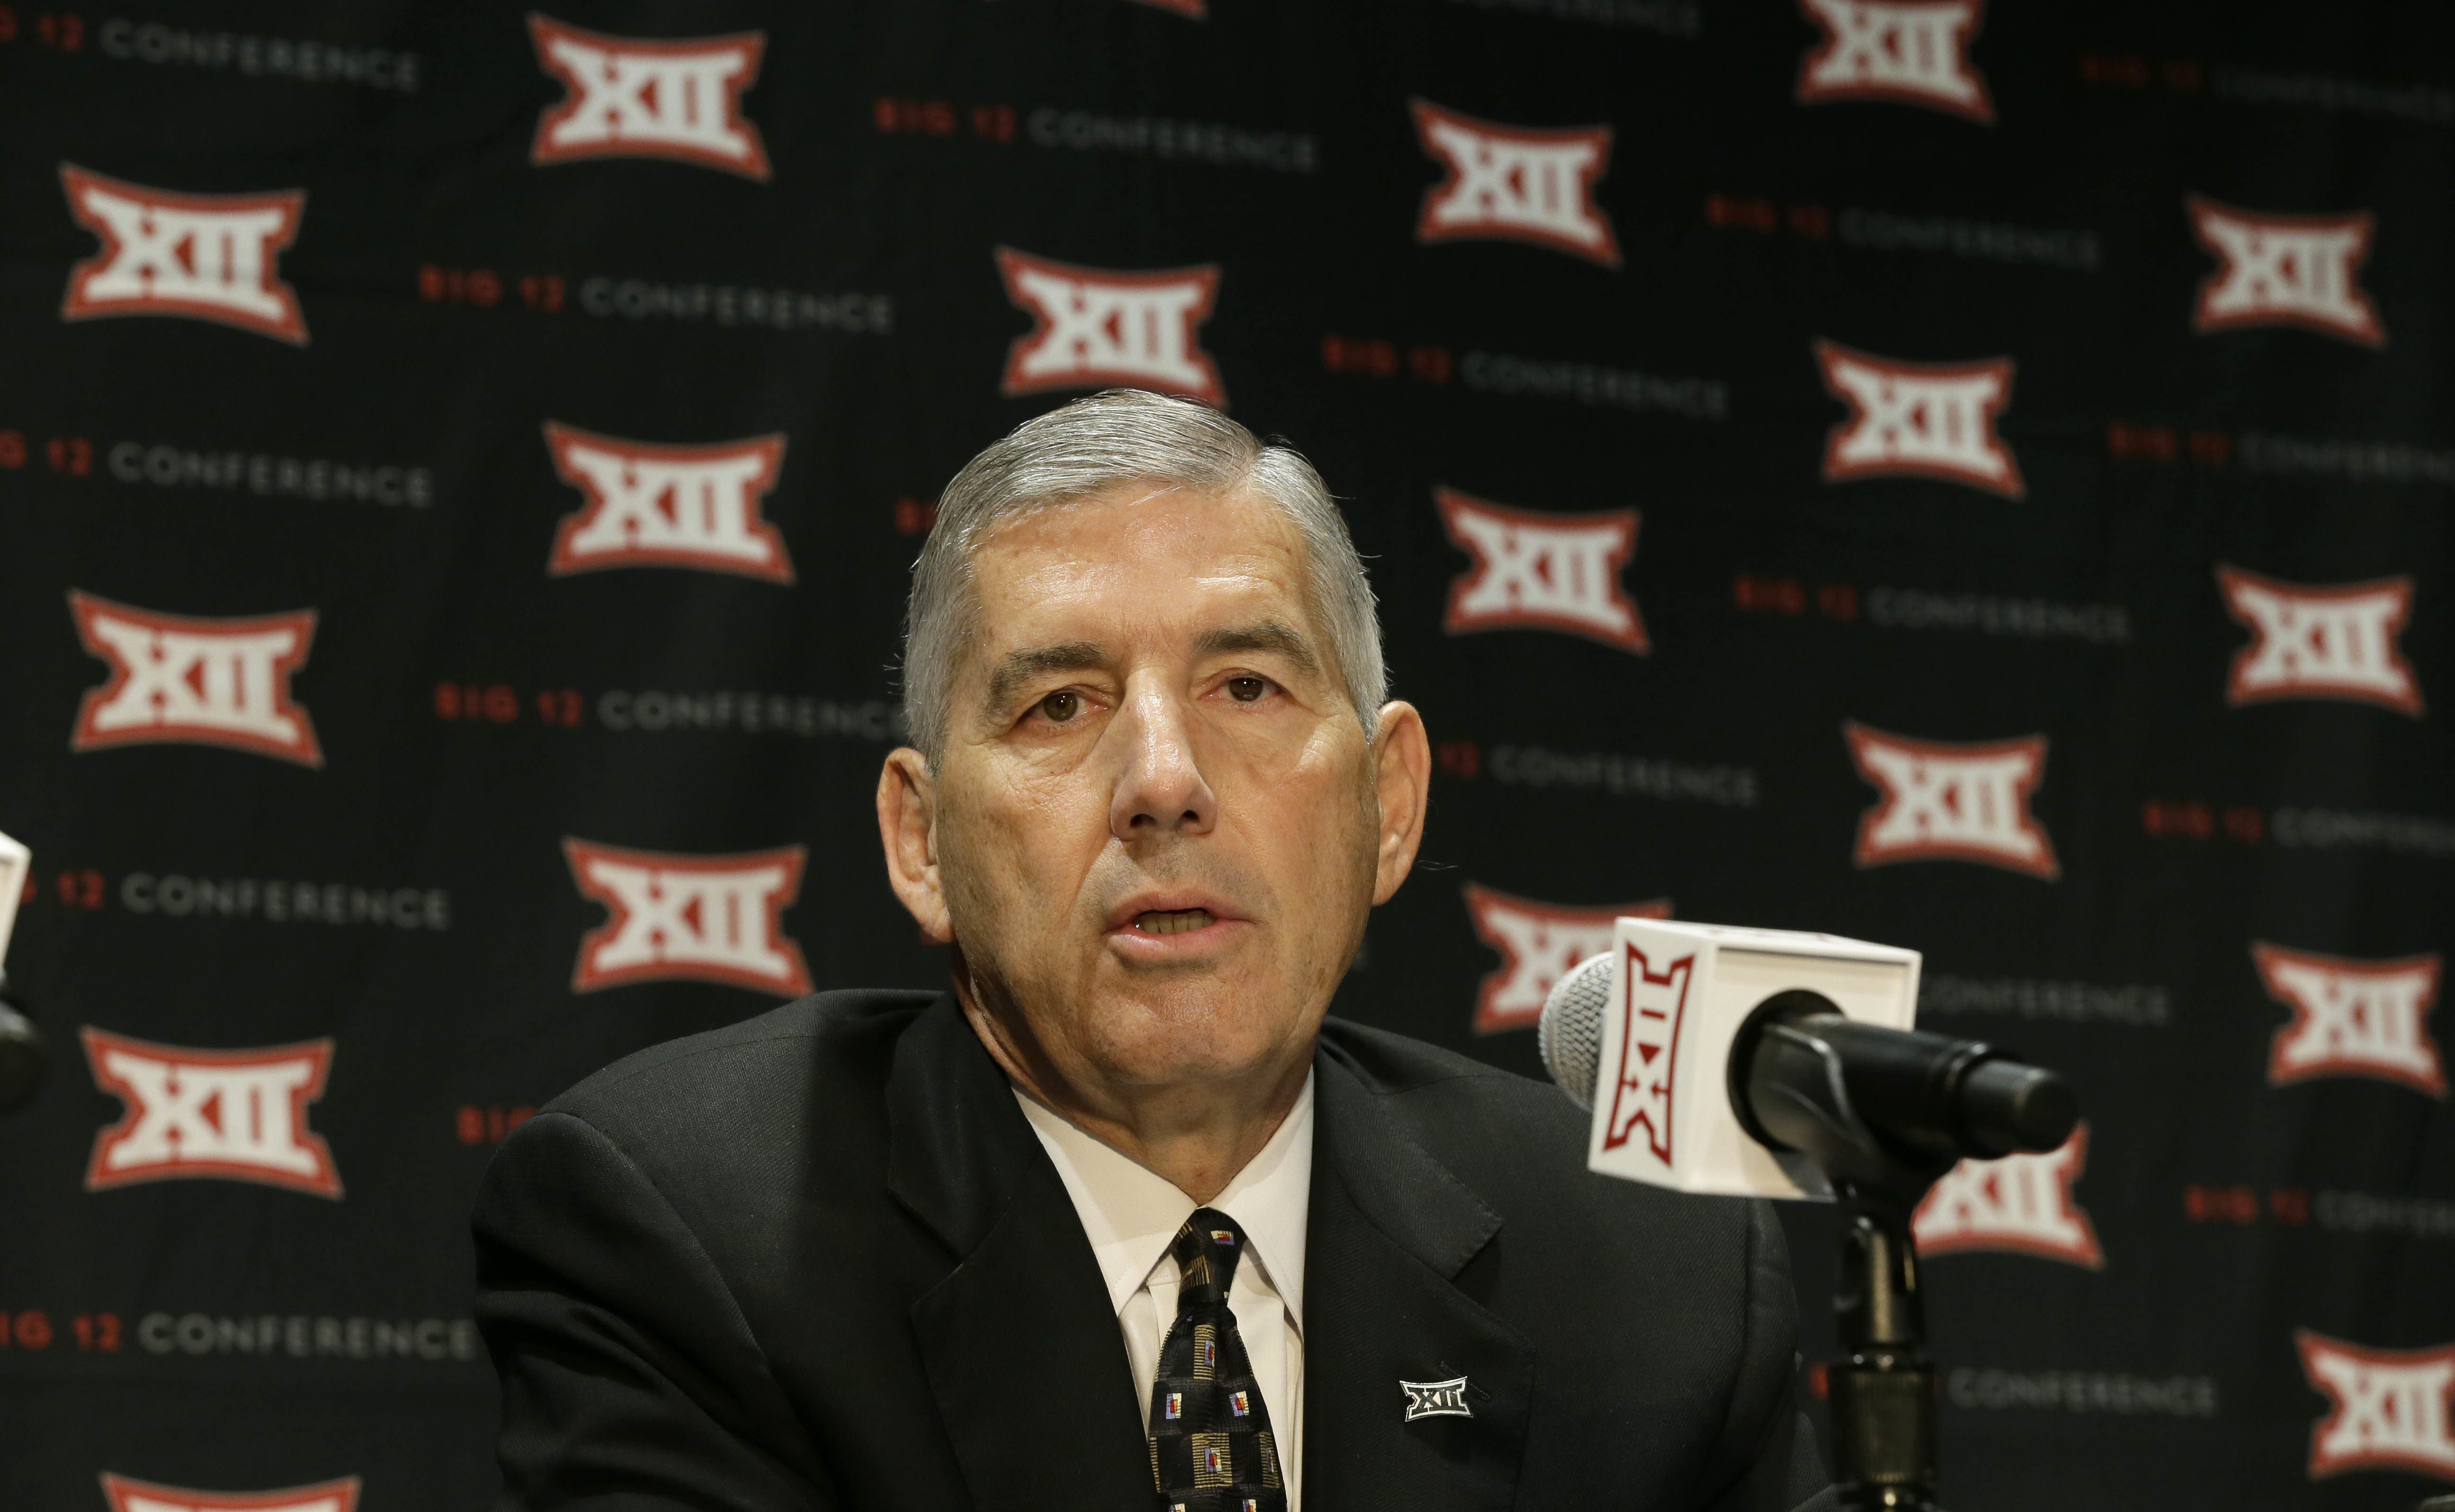 Big 12 Commissioner Bob Bowlsby speaks to reporters after The Big 12 Conference meeting in Grapevine, Texas, Monday, Oct. 17, 2016. The Big 12 Conference has decided against expansion from its current 10 schools after three months of analyzing, vetting an